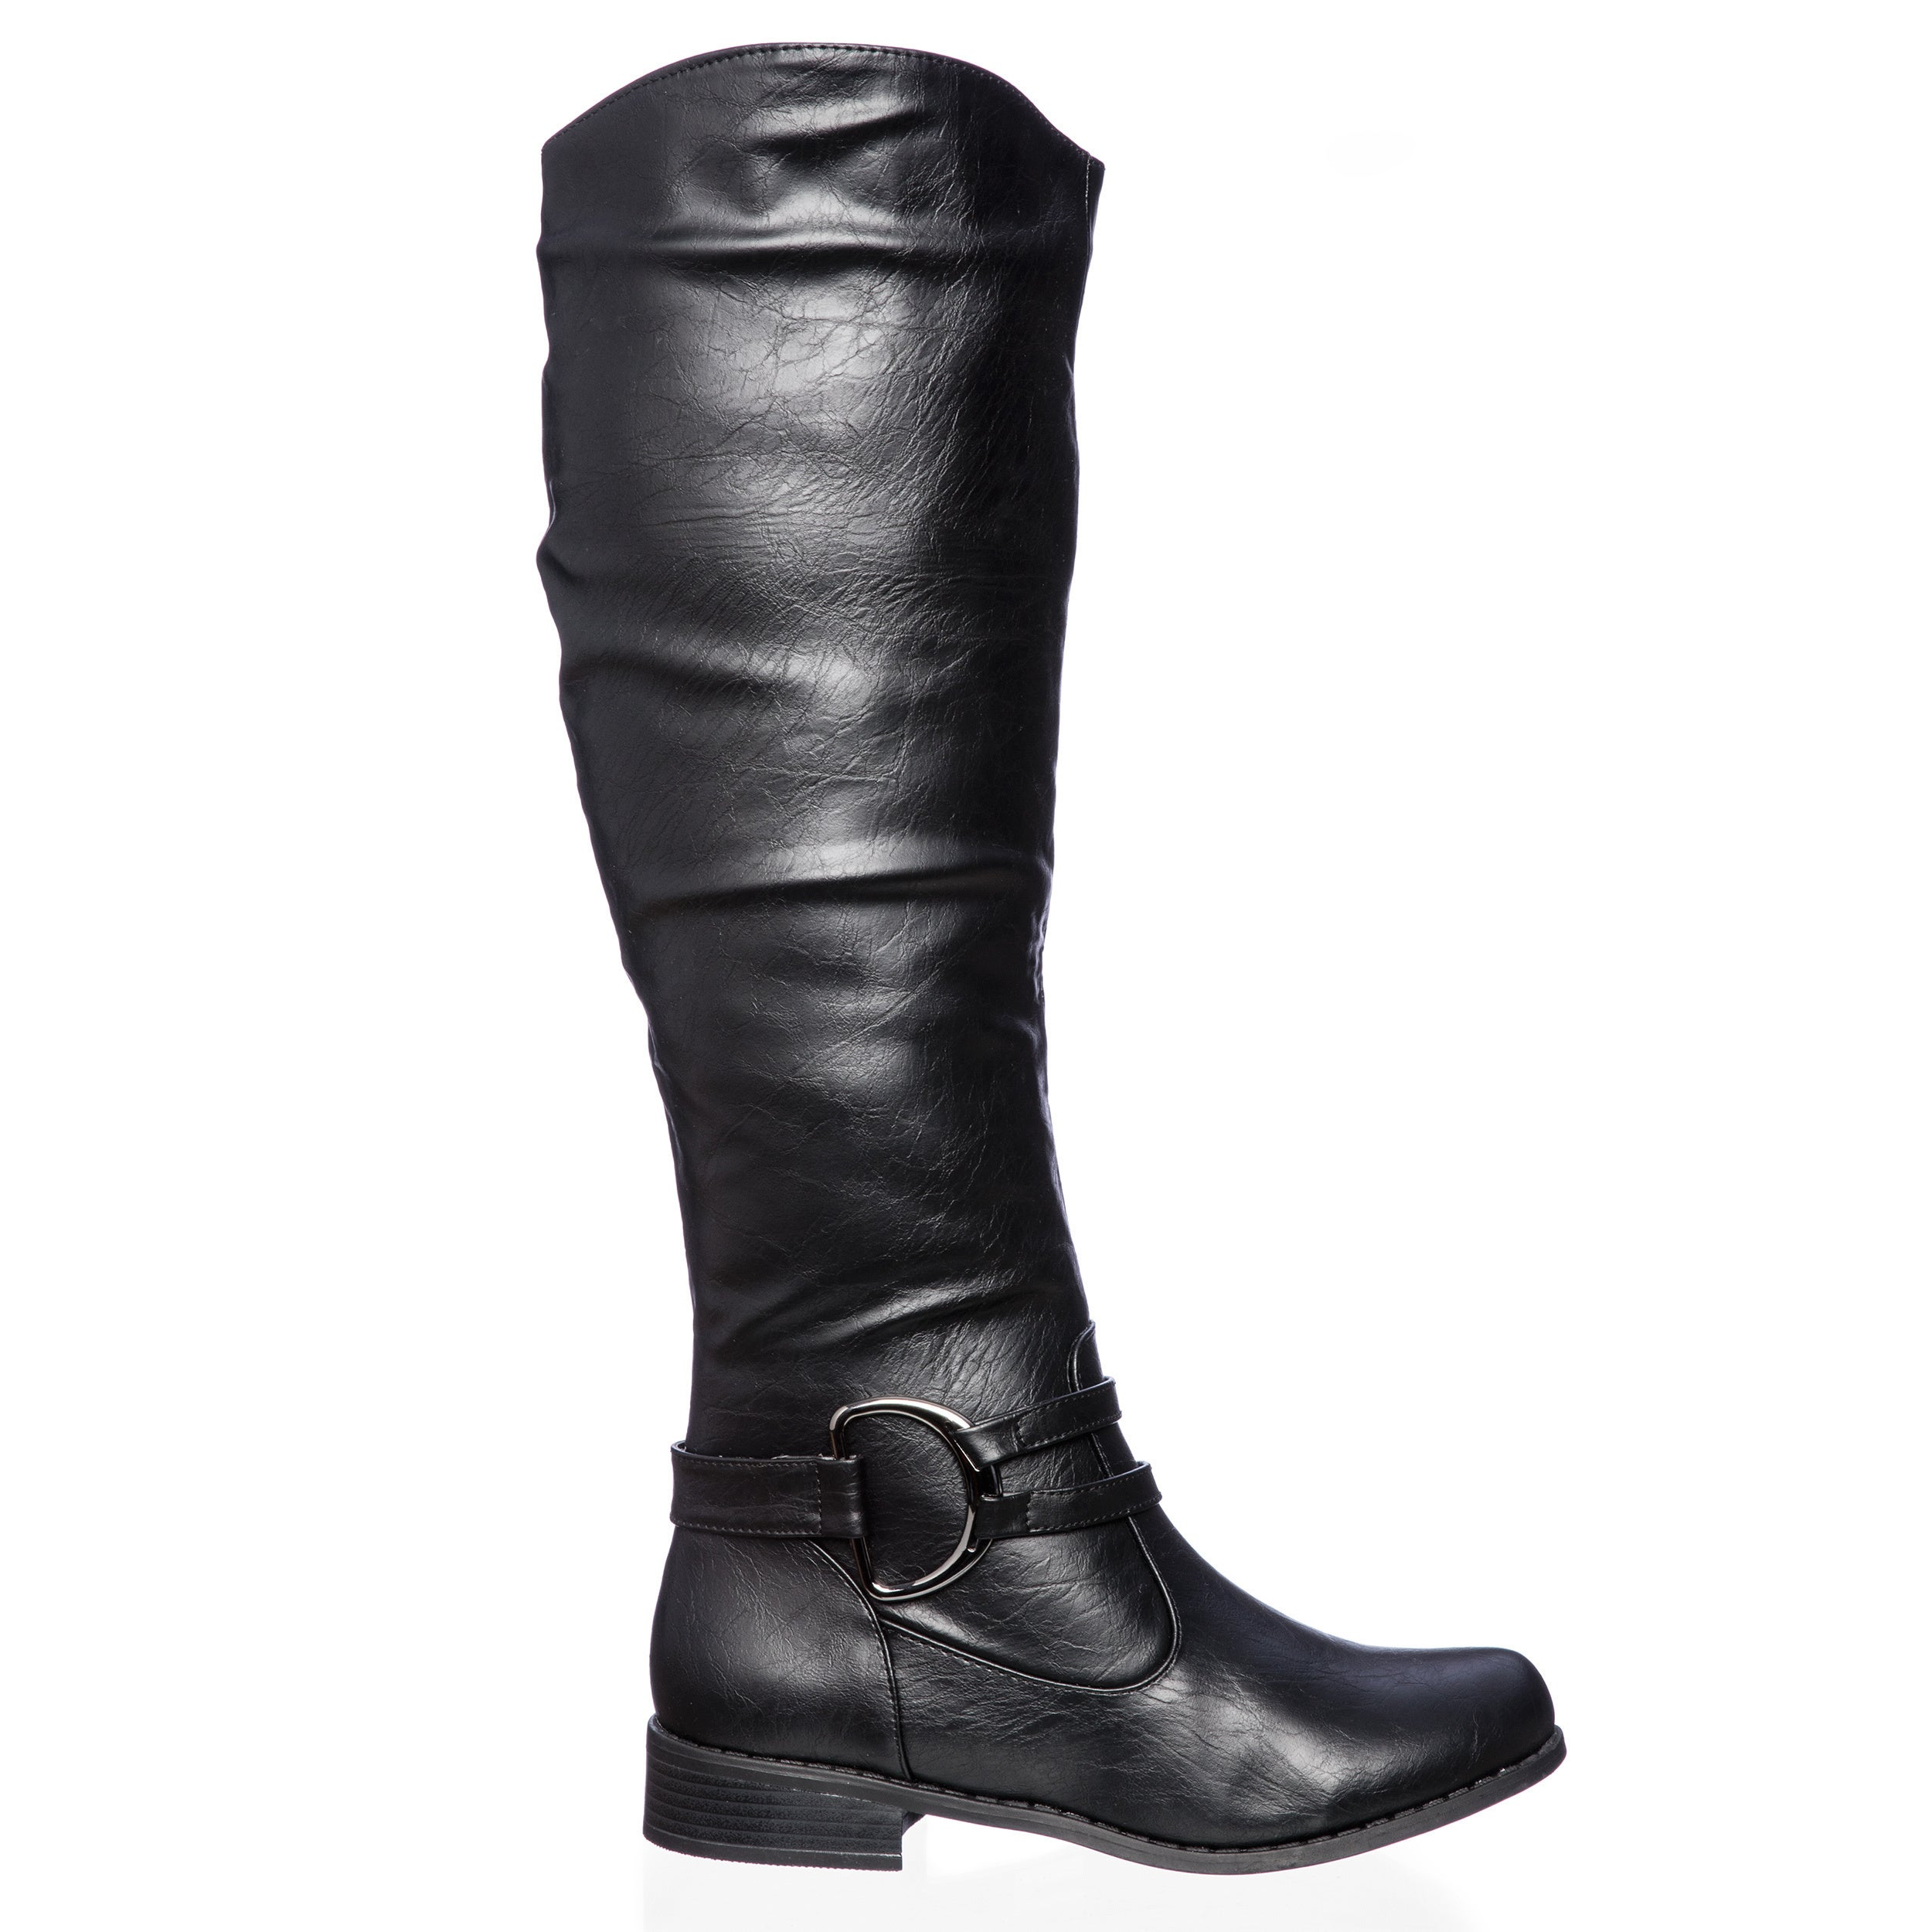 Journee Collection Women's 'Charming-01' Regular and Wide-calf Knee-high  Riding Boot - Free Shipping Today - Overstock.com - 13839009